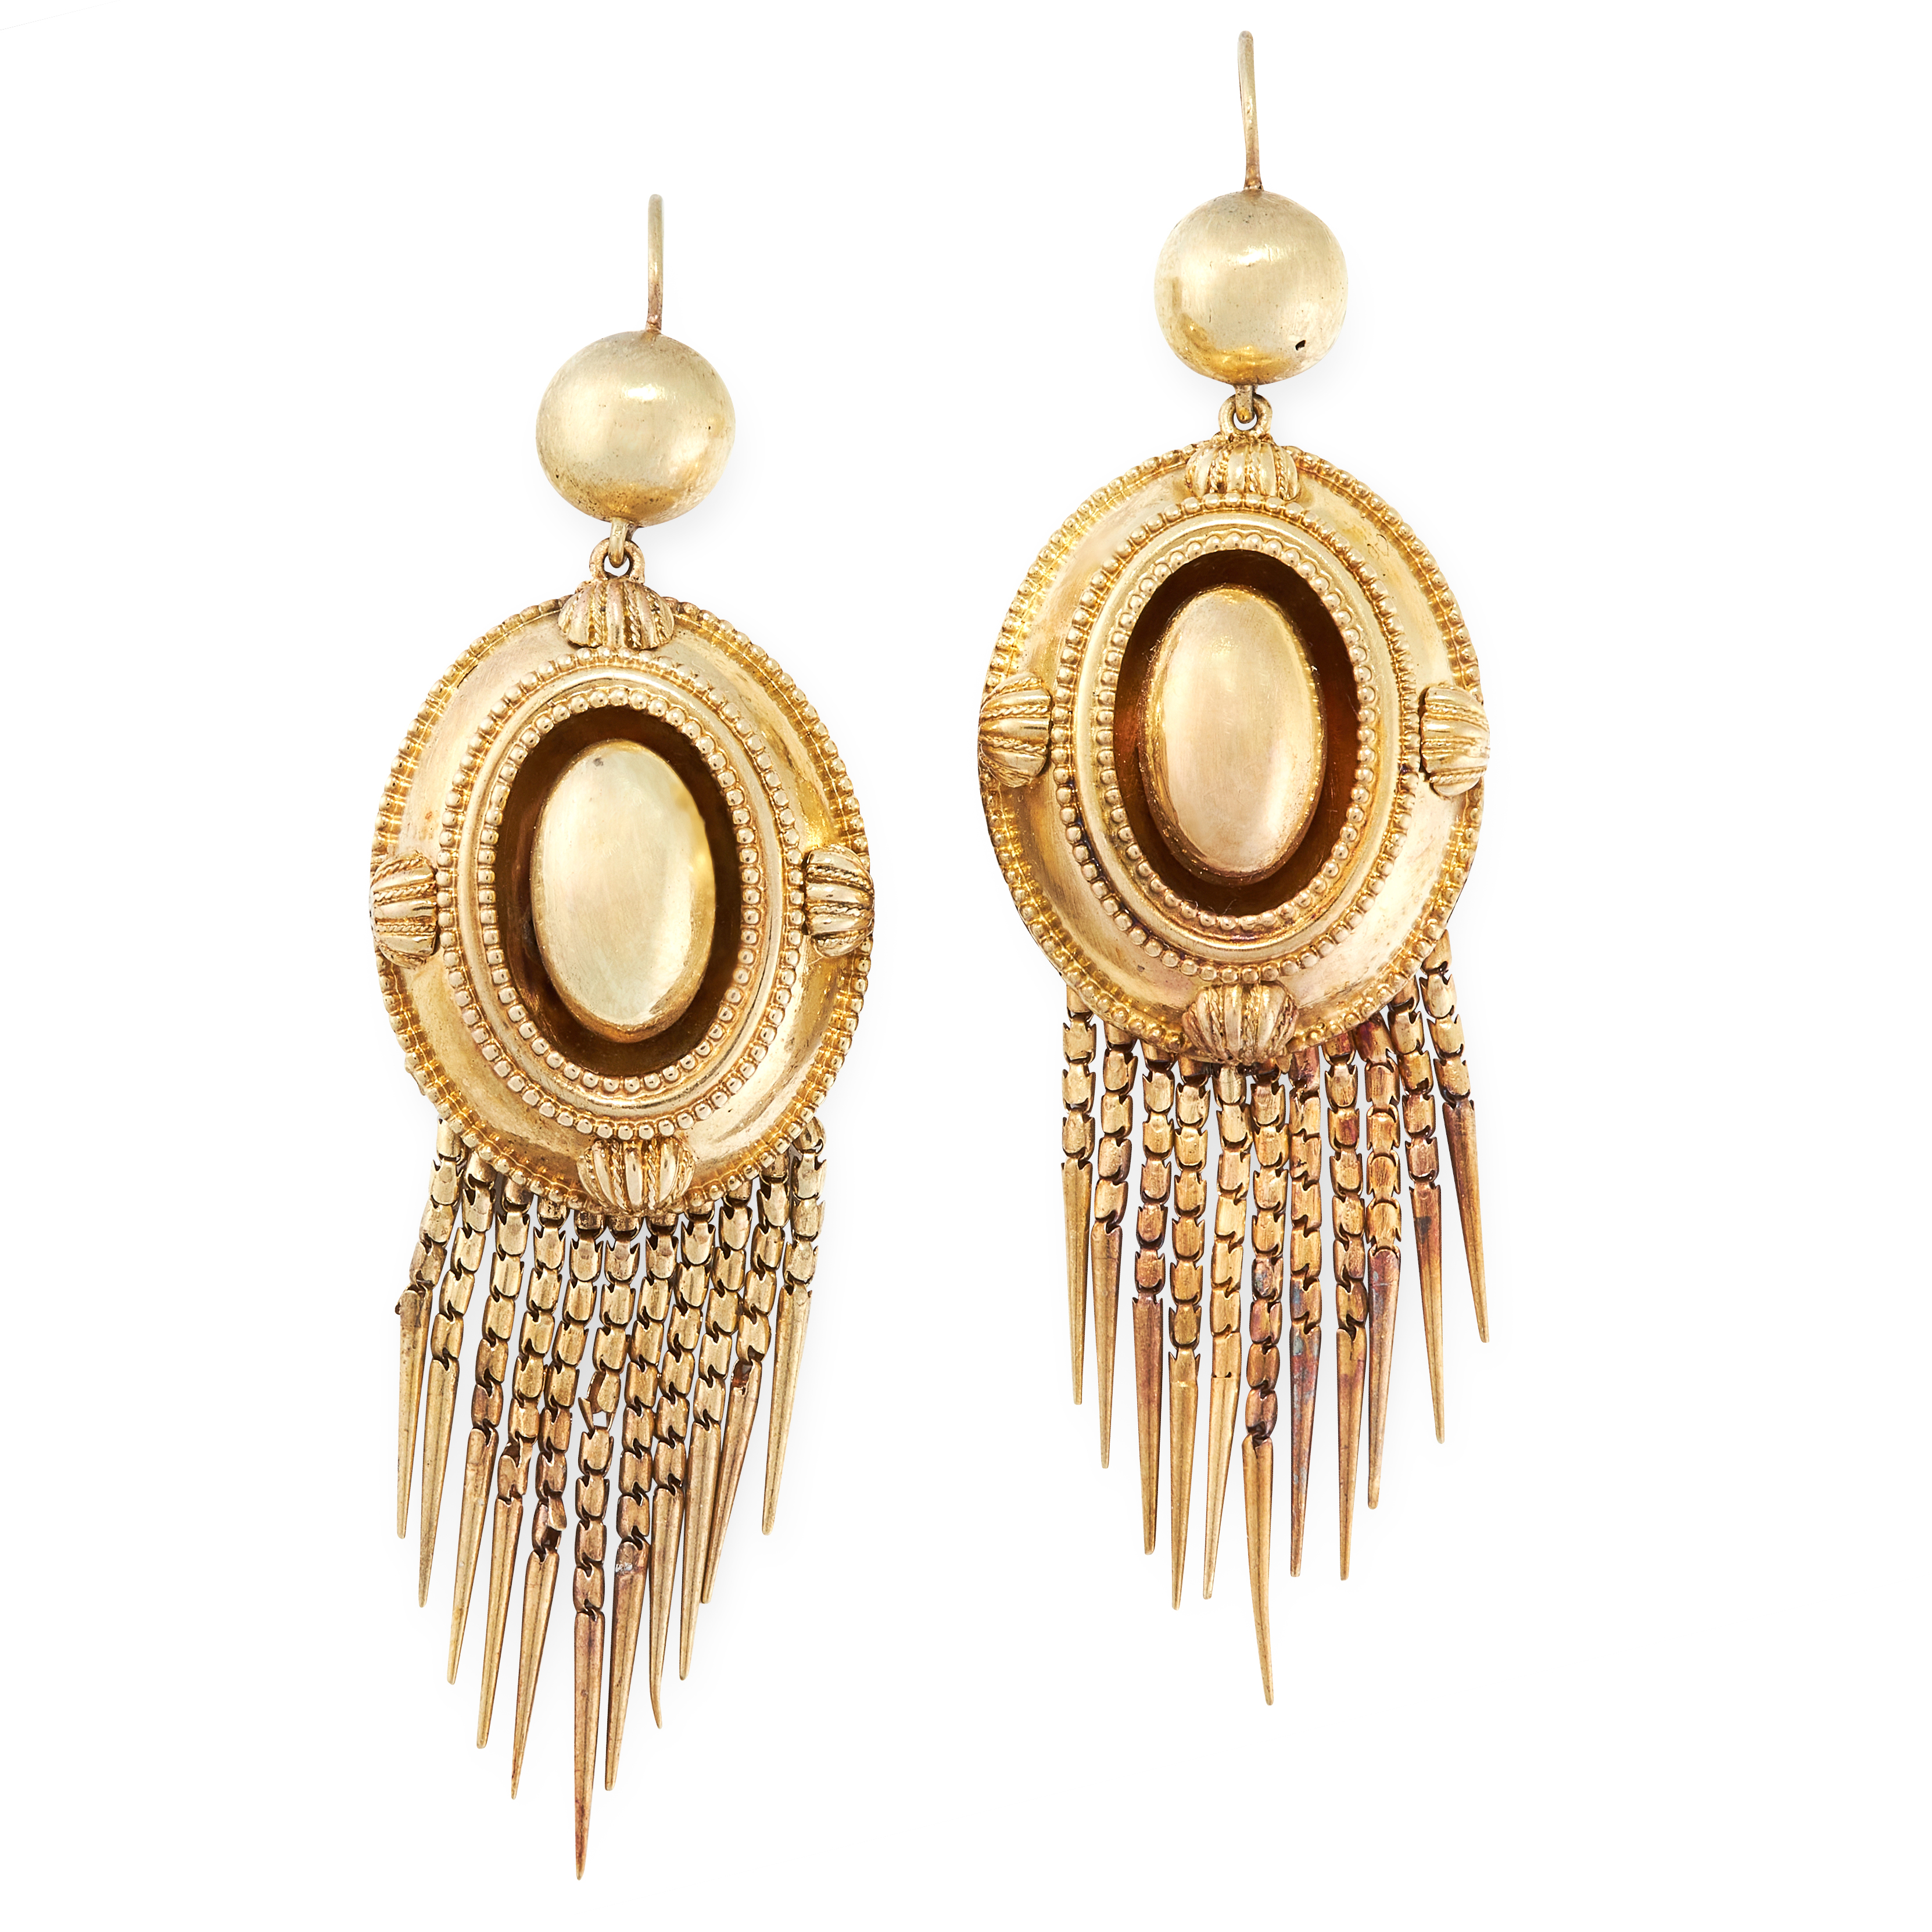 A PAIR OF ANTIQUE TASSEL EARRINGS, 19TH CENTURY in yellow gold, the oval bodies with beaded and